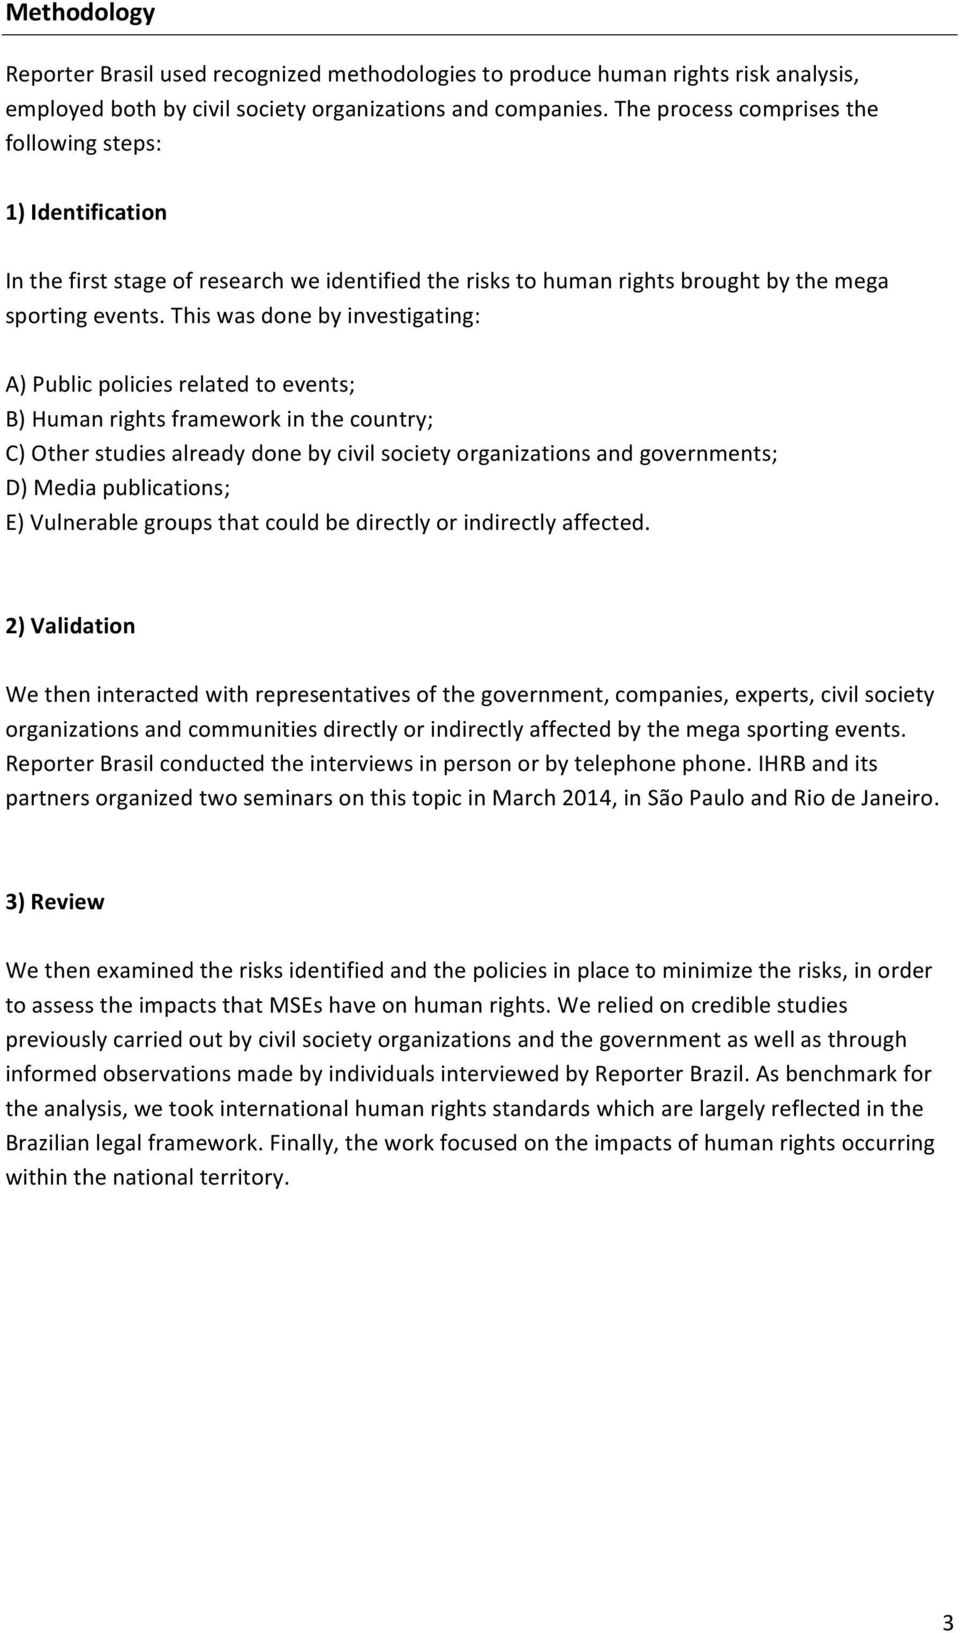 This was done by investigating: A) Public policies related to events; B) Human rights framework in the country; C) Other studies already done by civil society organizations and governments; D) Media